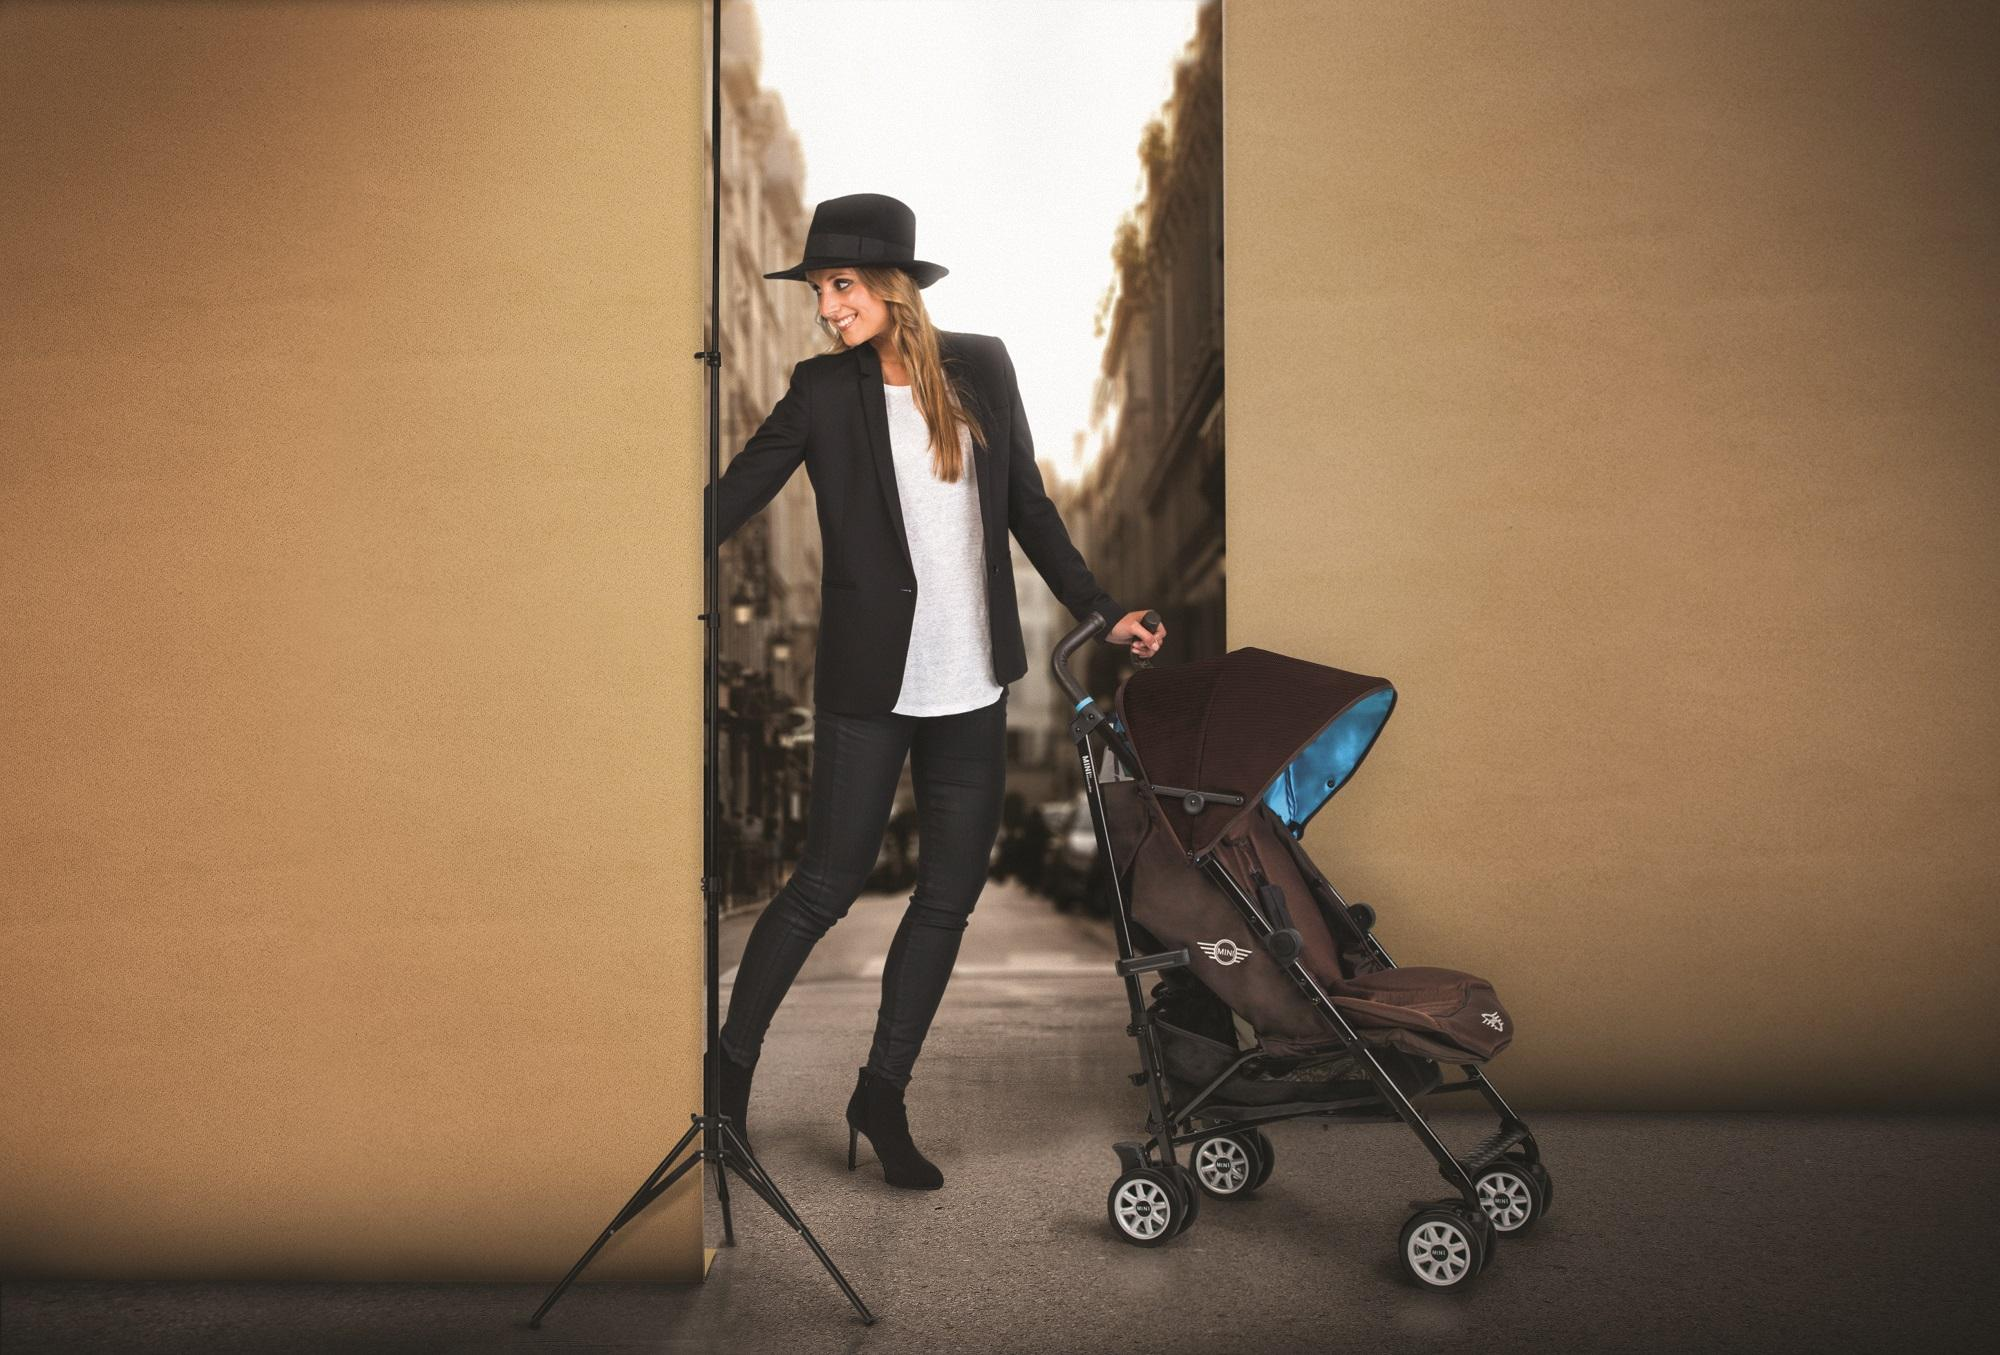 Campaign Easywalker_buggy - Lifestyle Pict.jpg